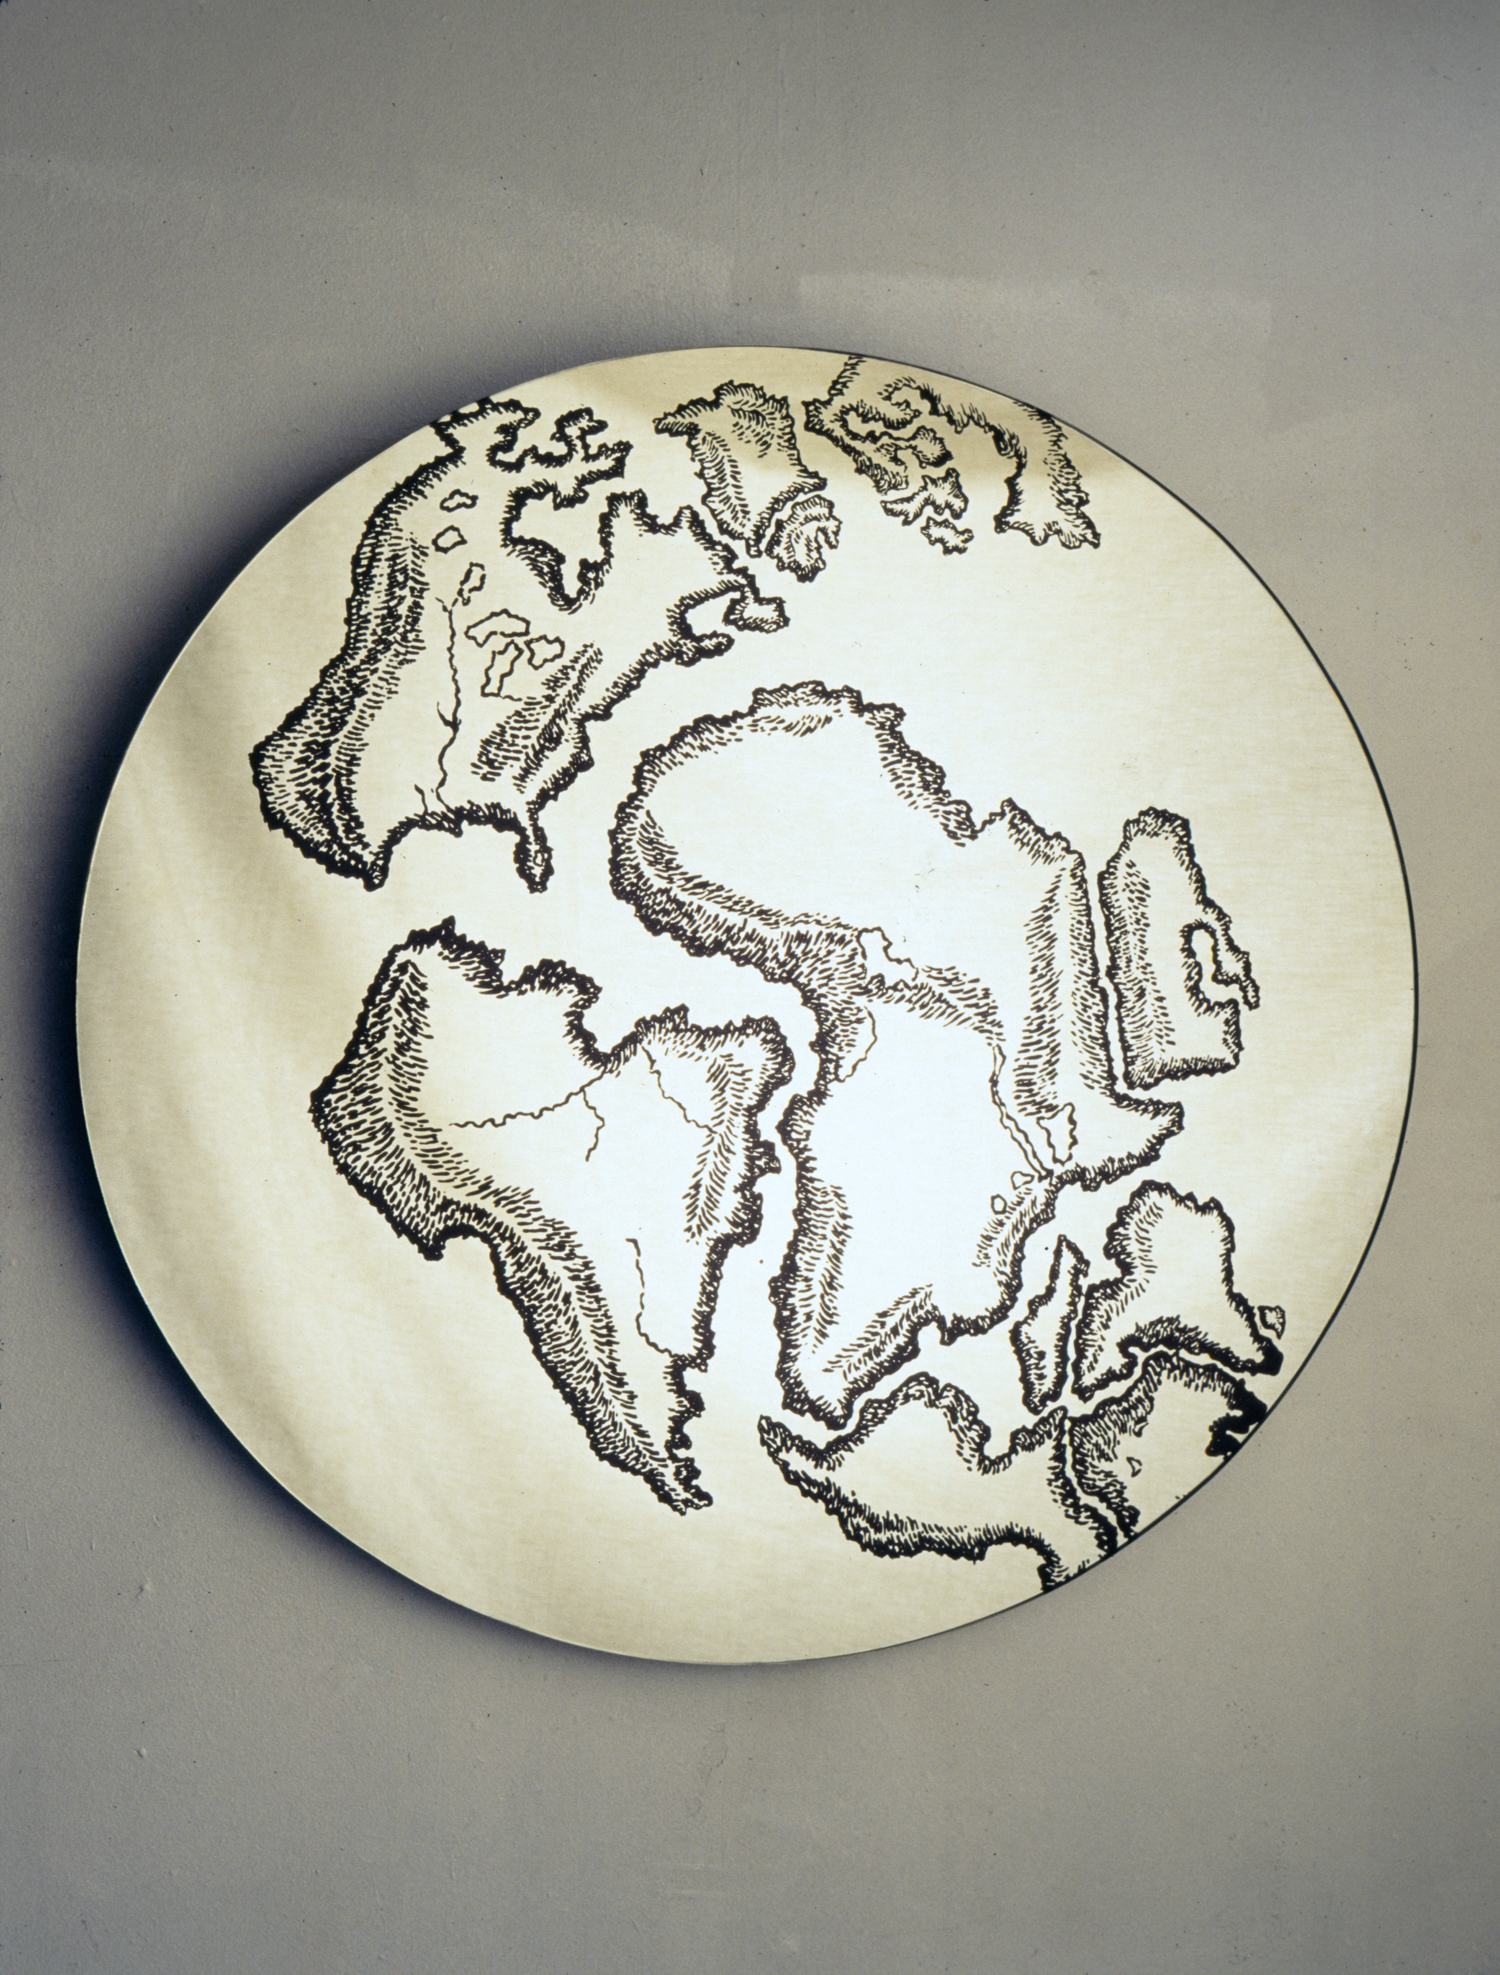 Pangæa printed on glass and silver-mirrored